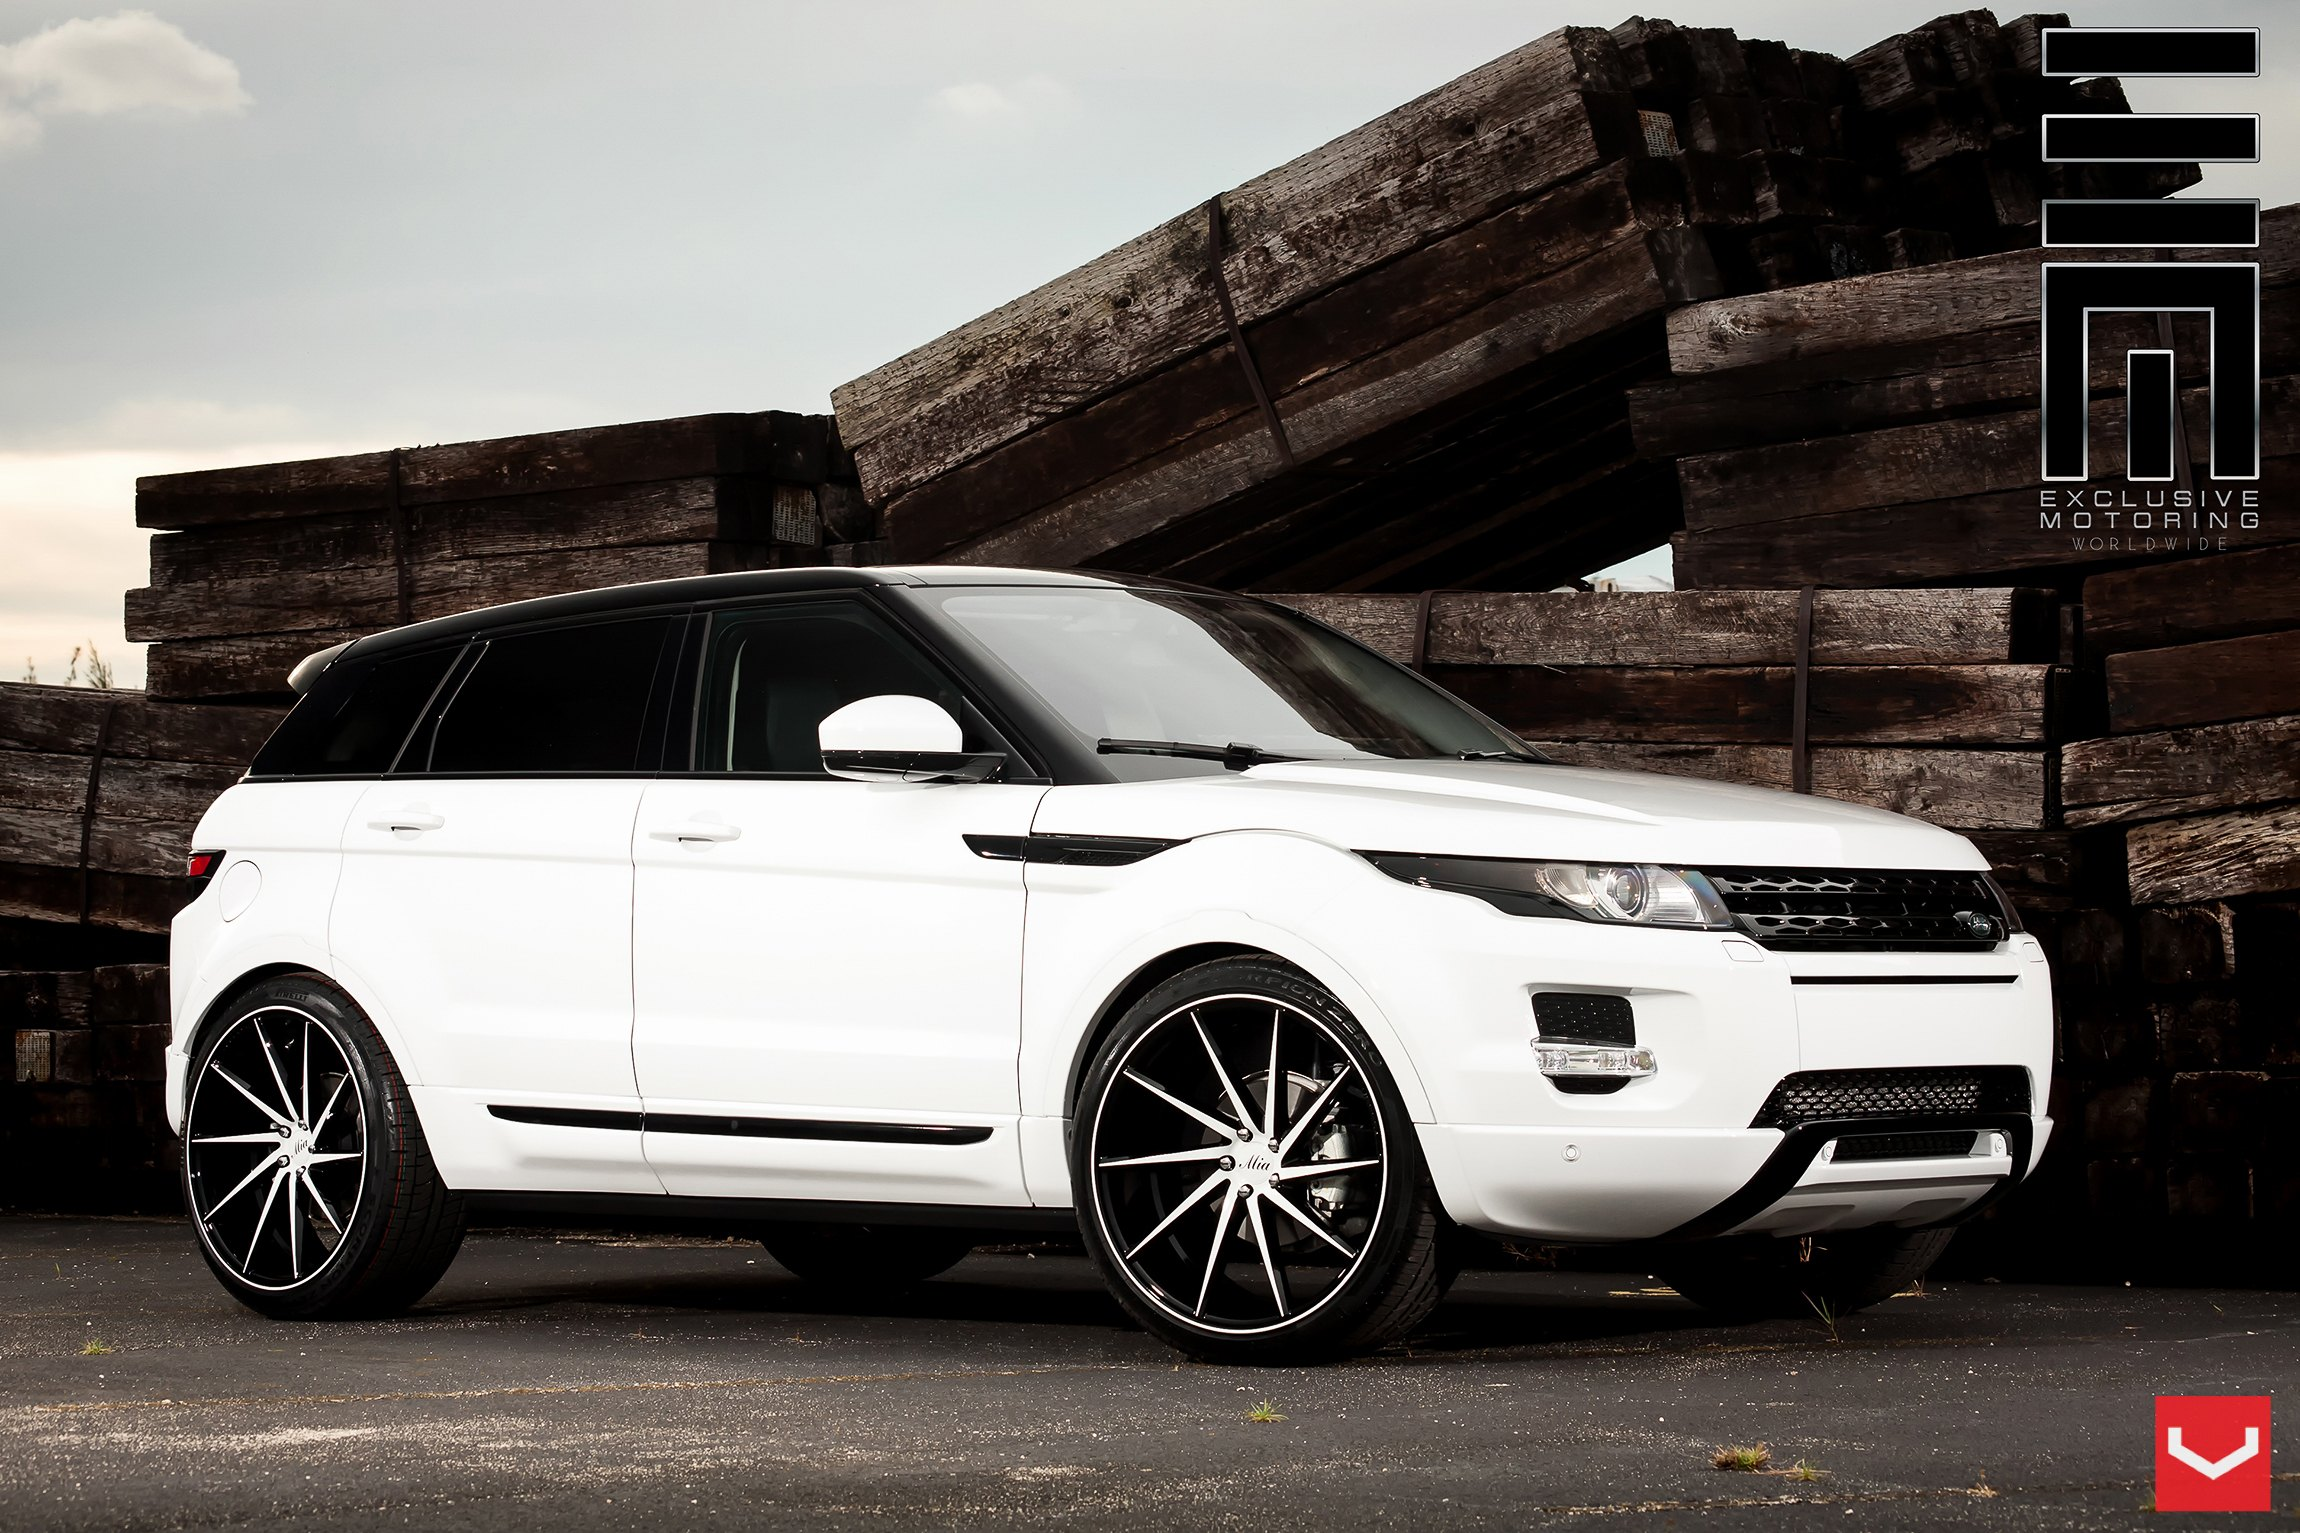 Range Rover Evoque Blacked Out >> Range Rover Evoque Blacked Out - 2018 - 2019 New Car Reviews by Language Kompis